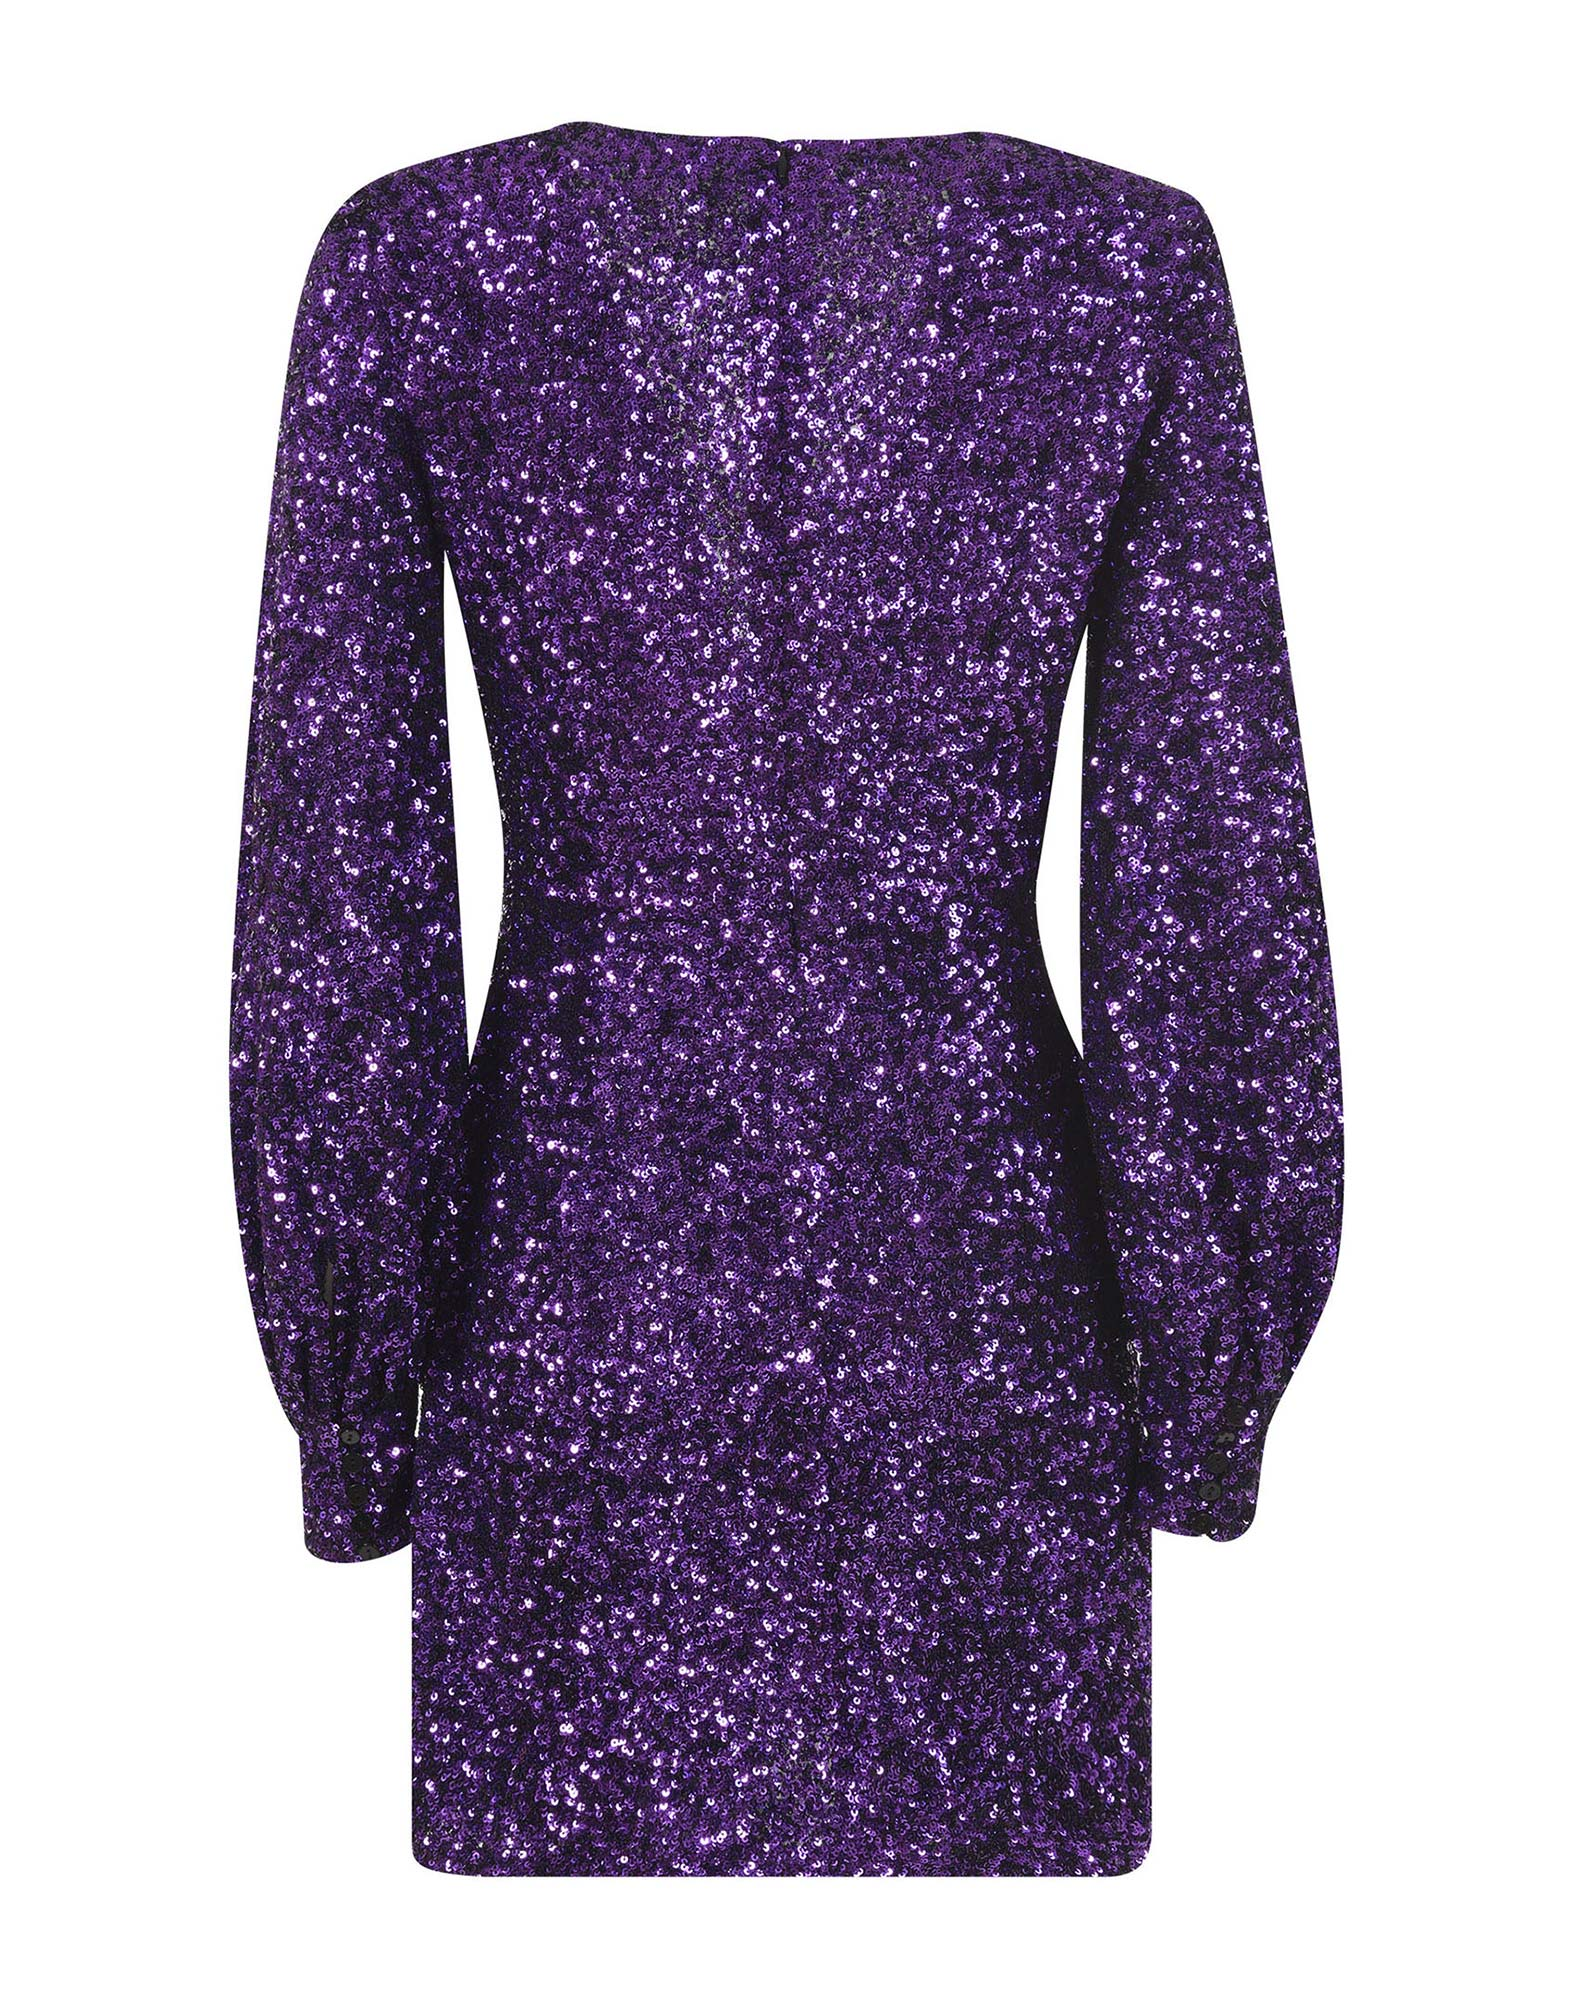 Purple v-neck sequined mini dress